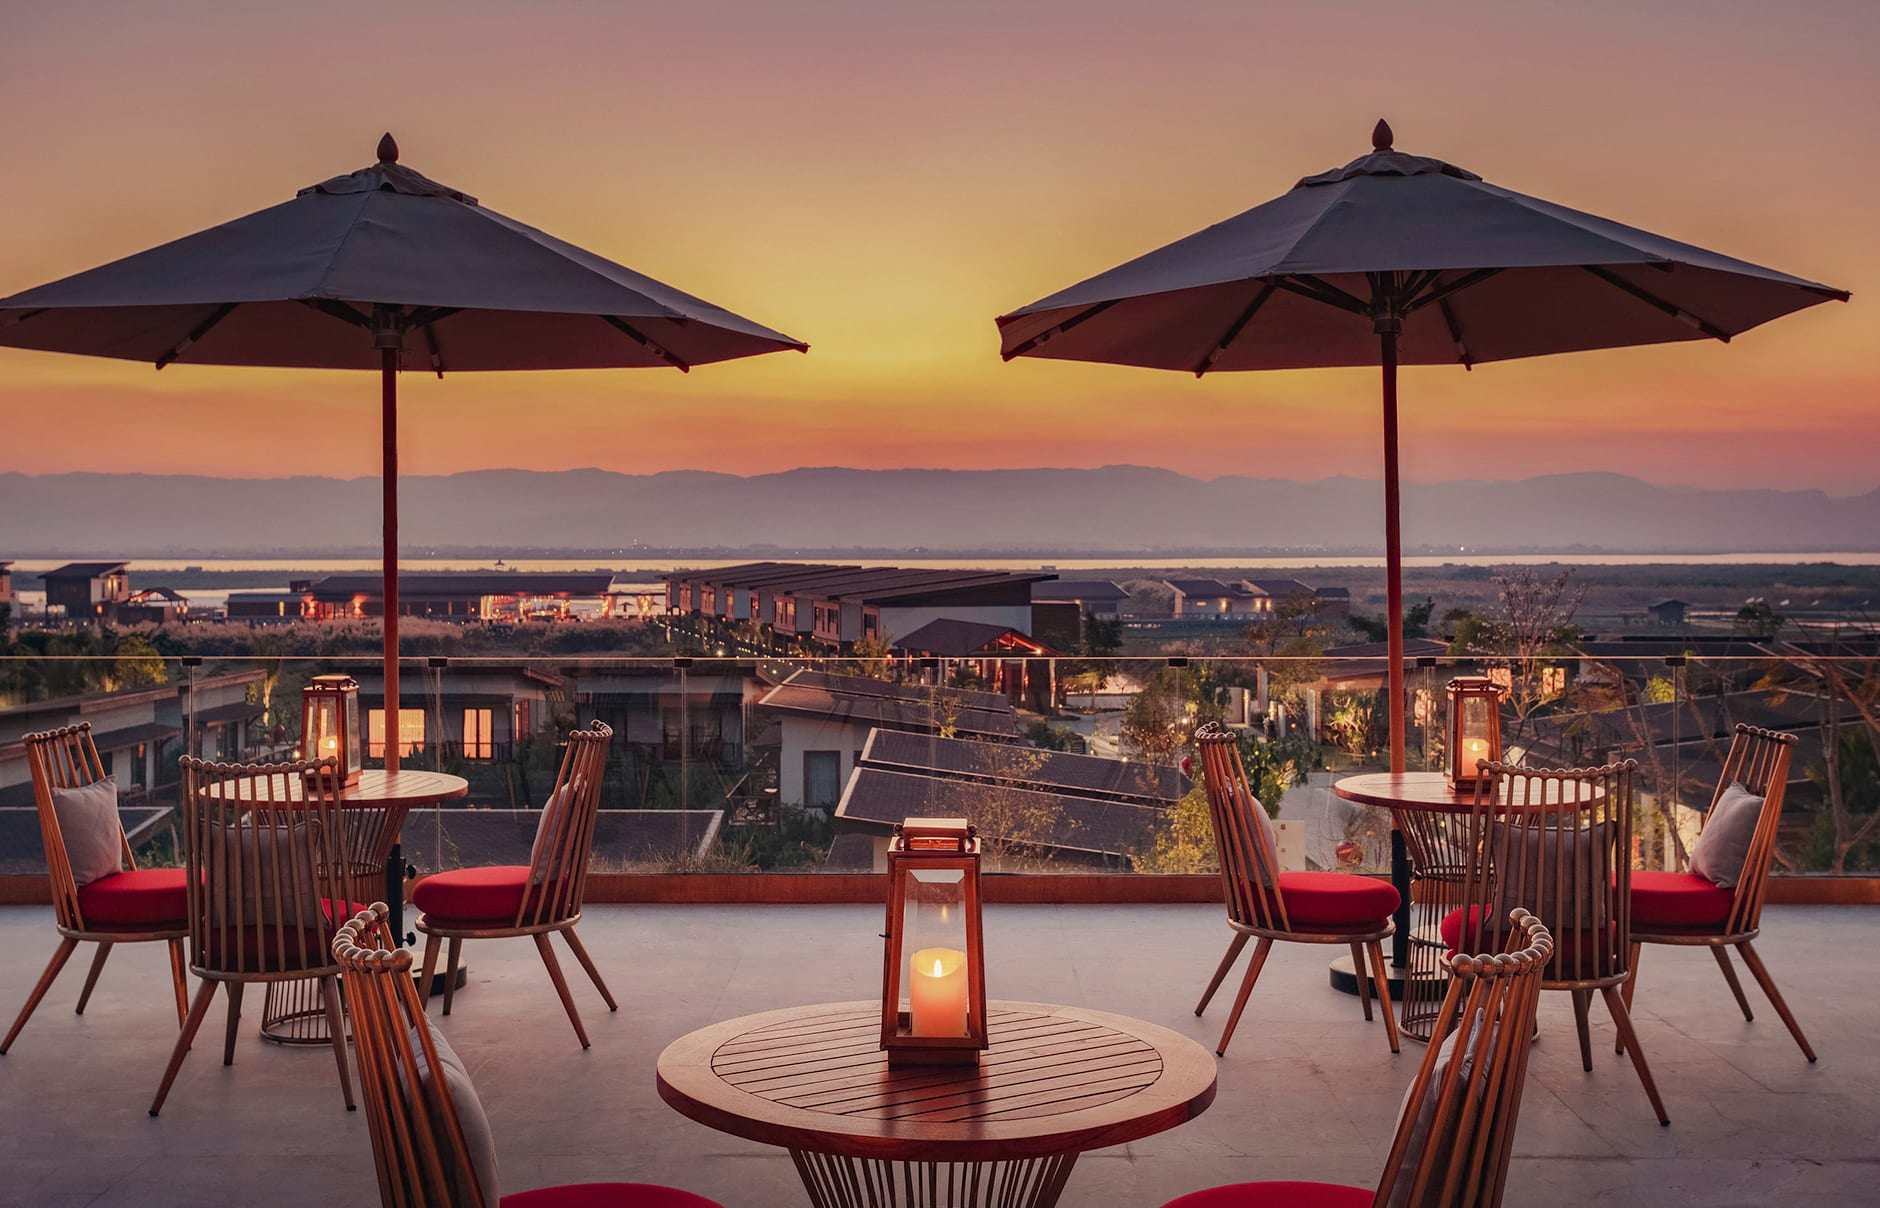 Sofitel Inle Lake Myat Min, Shan, Myanmar. Hotel Review by TravelPlusStyle. Photo © Sofitel